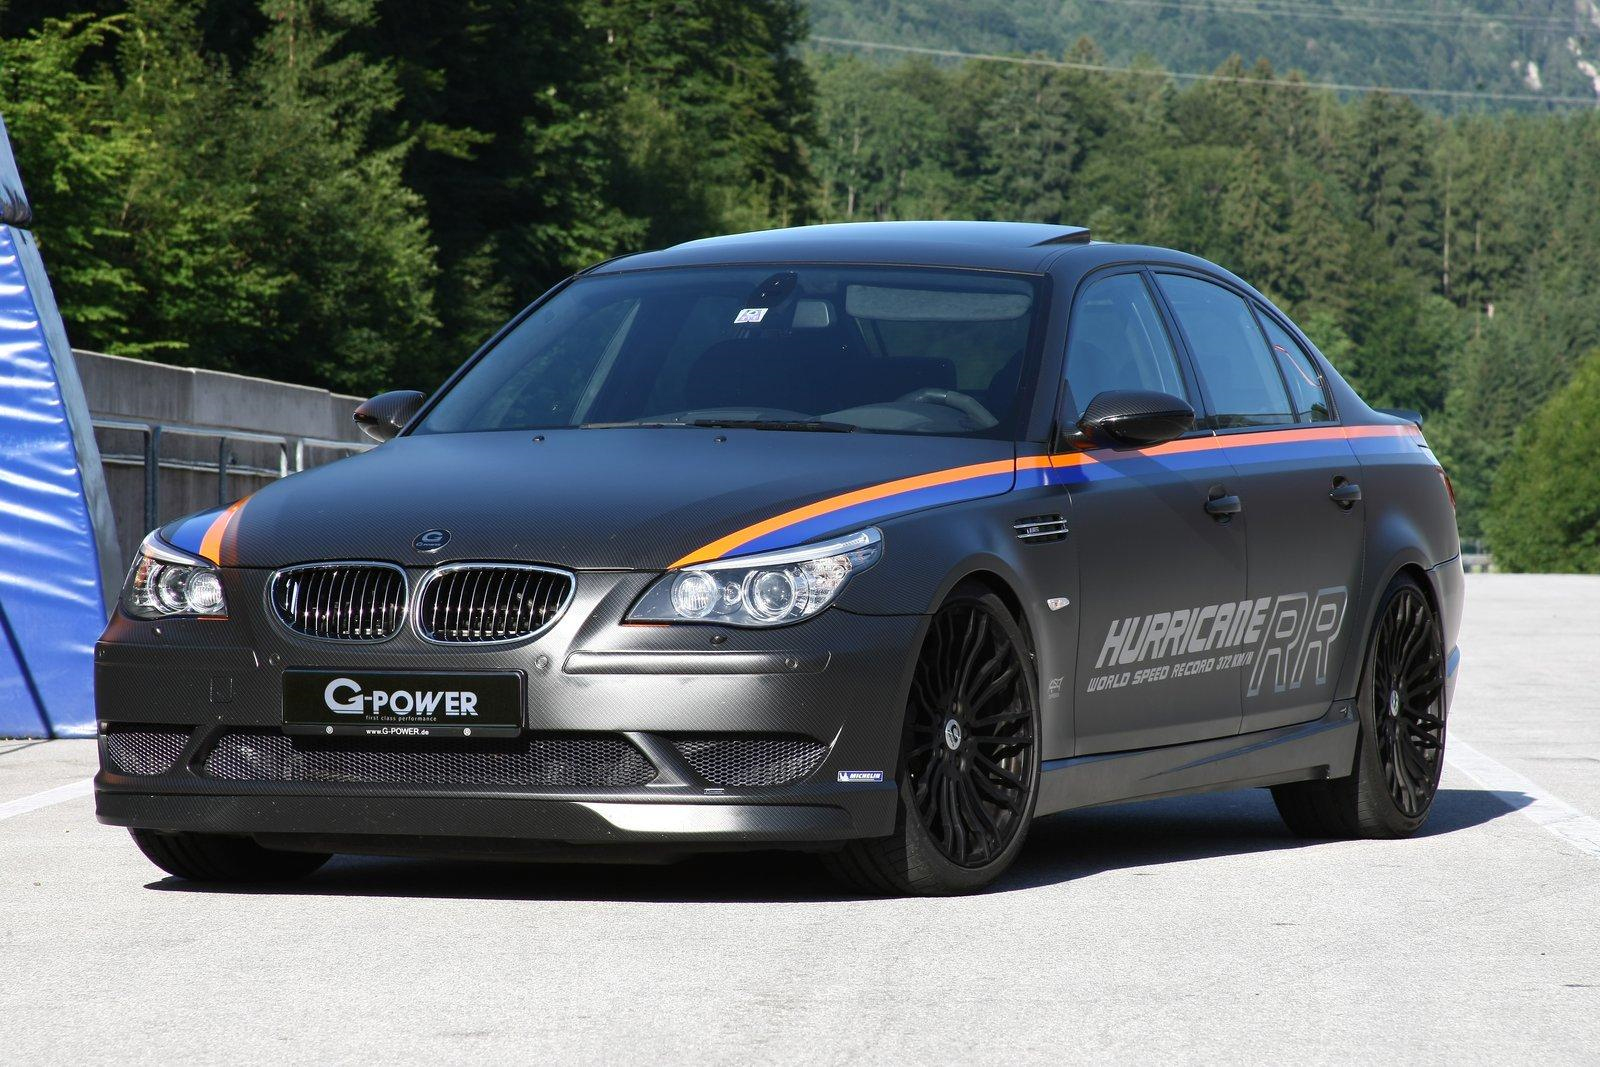 World's Fastest Sedan: G-Power BMW M5 Hurricane RR